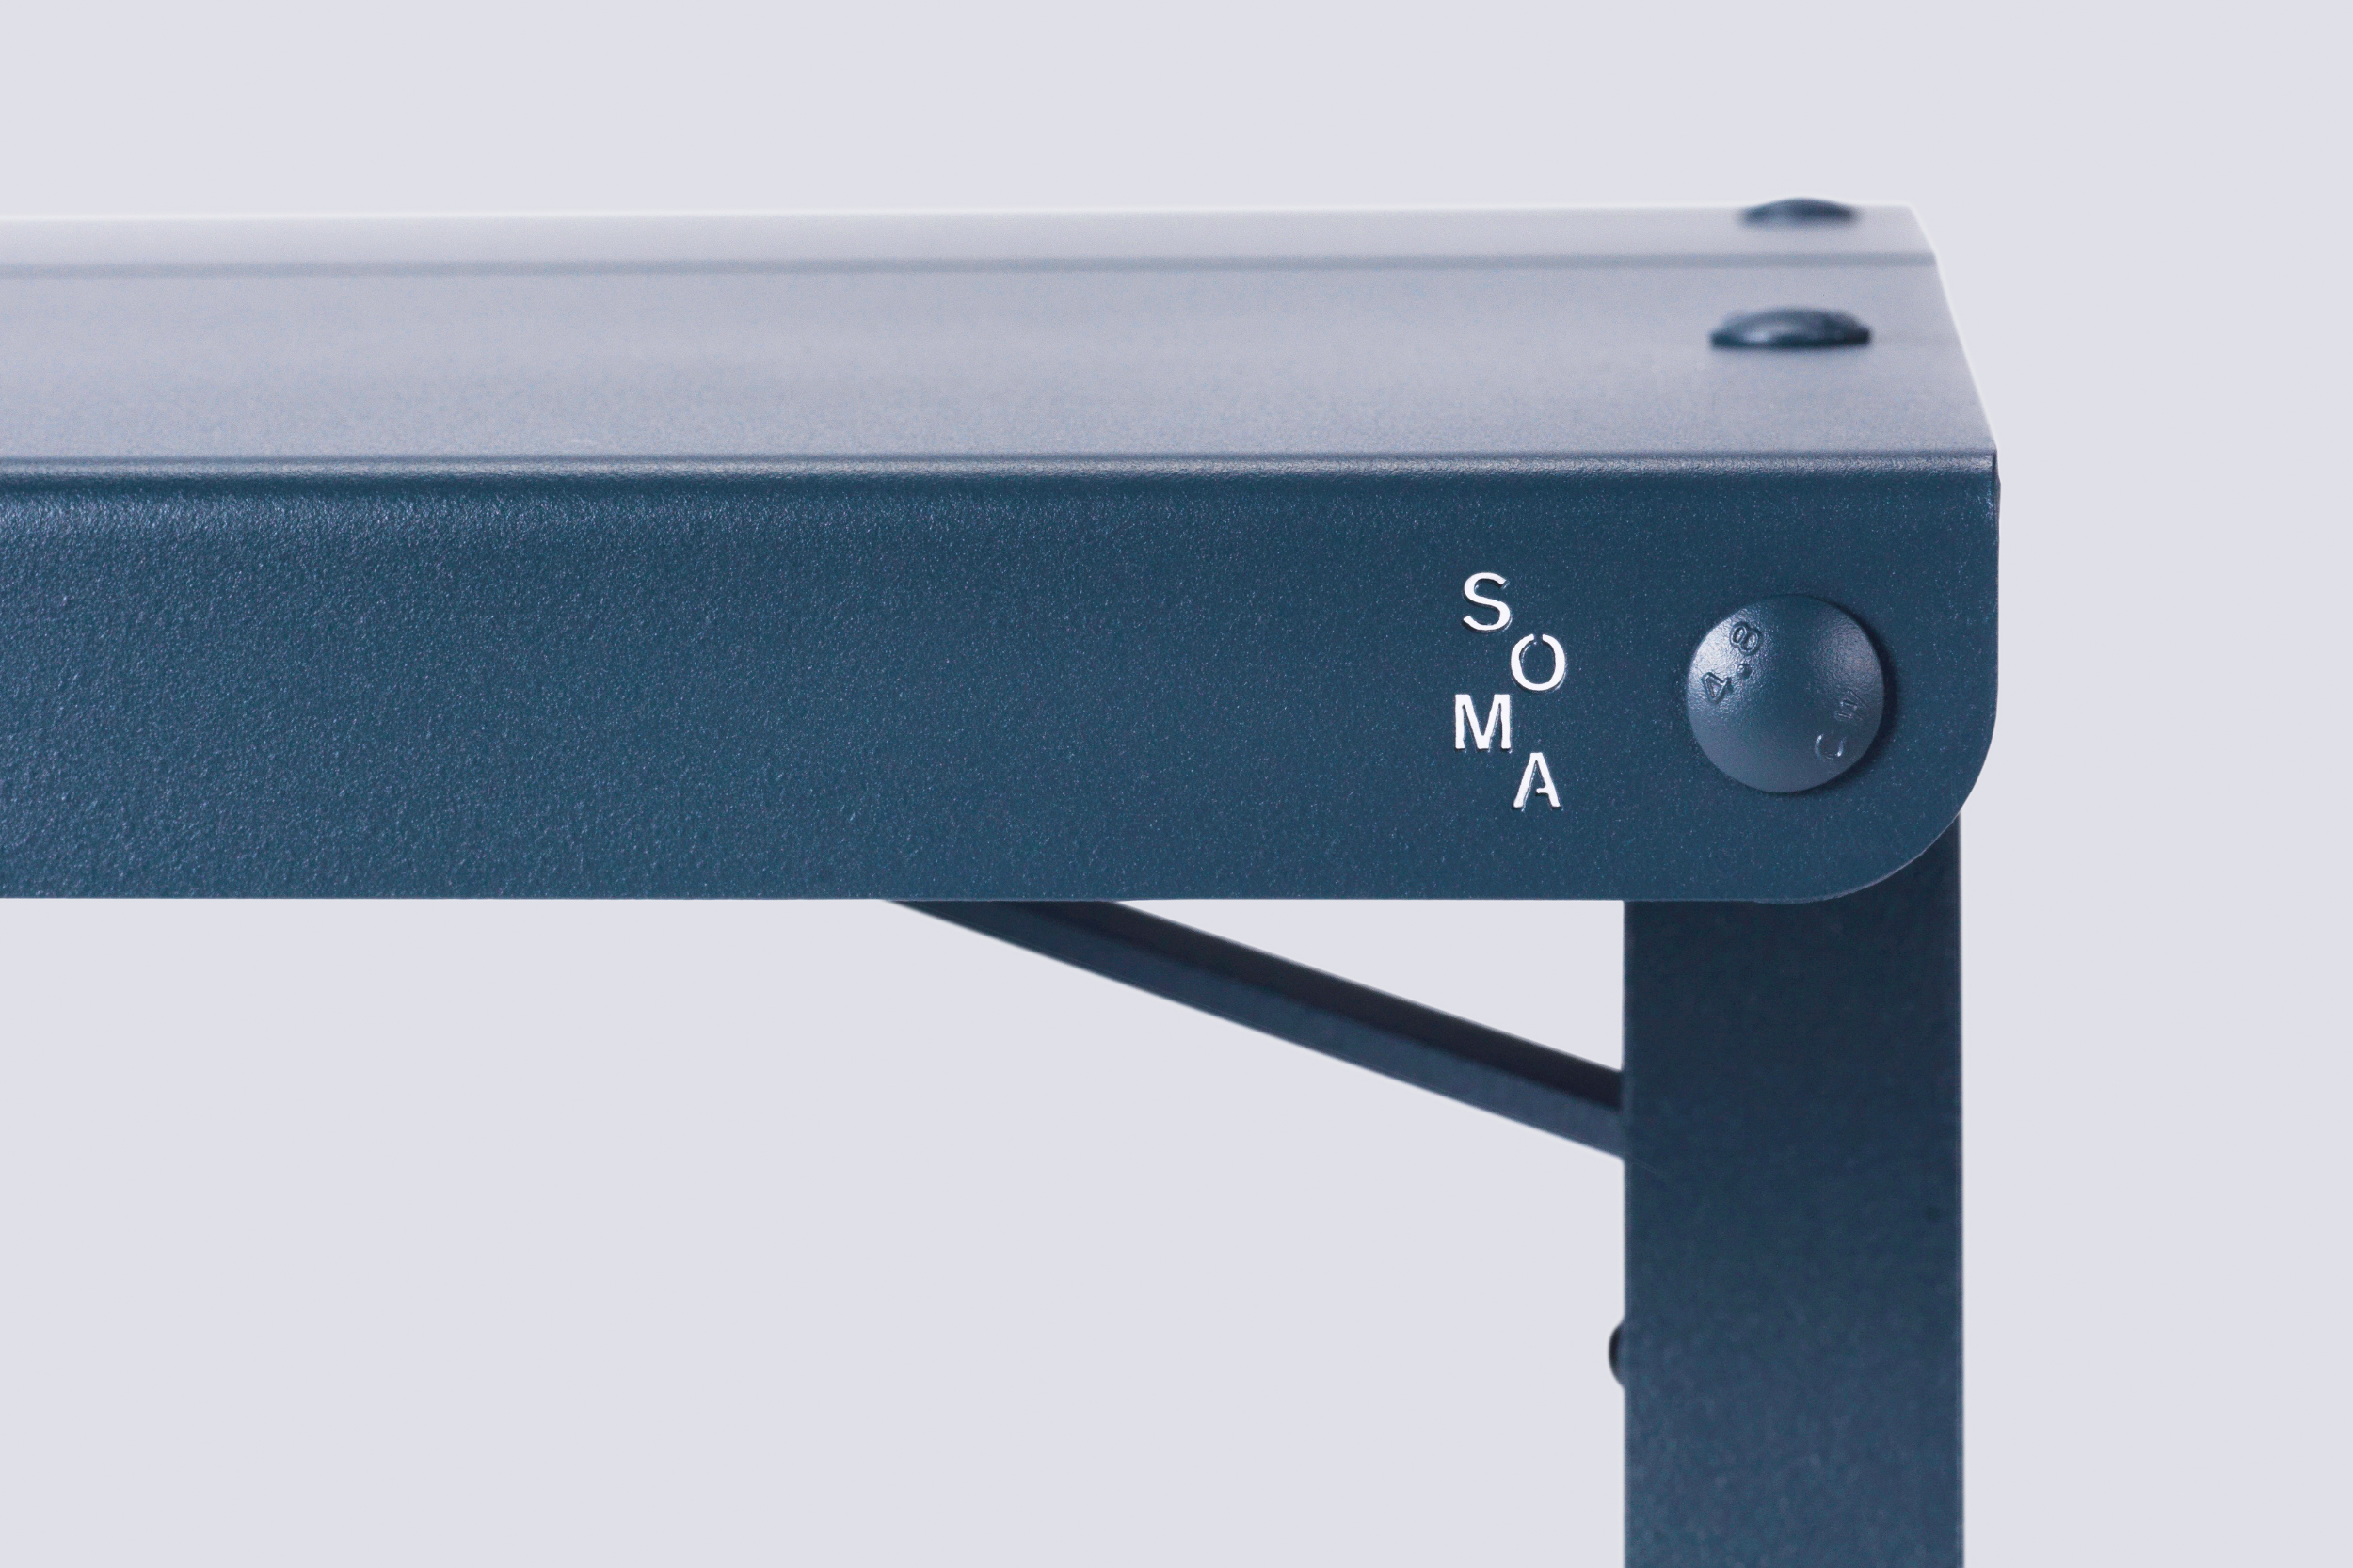 soma_table_03.jpg